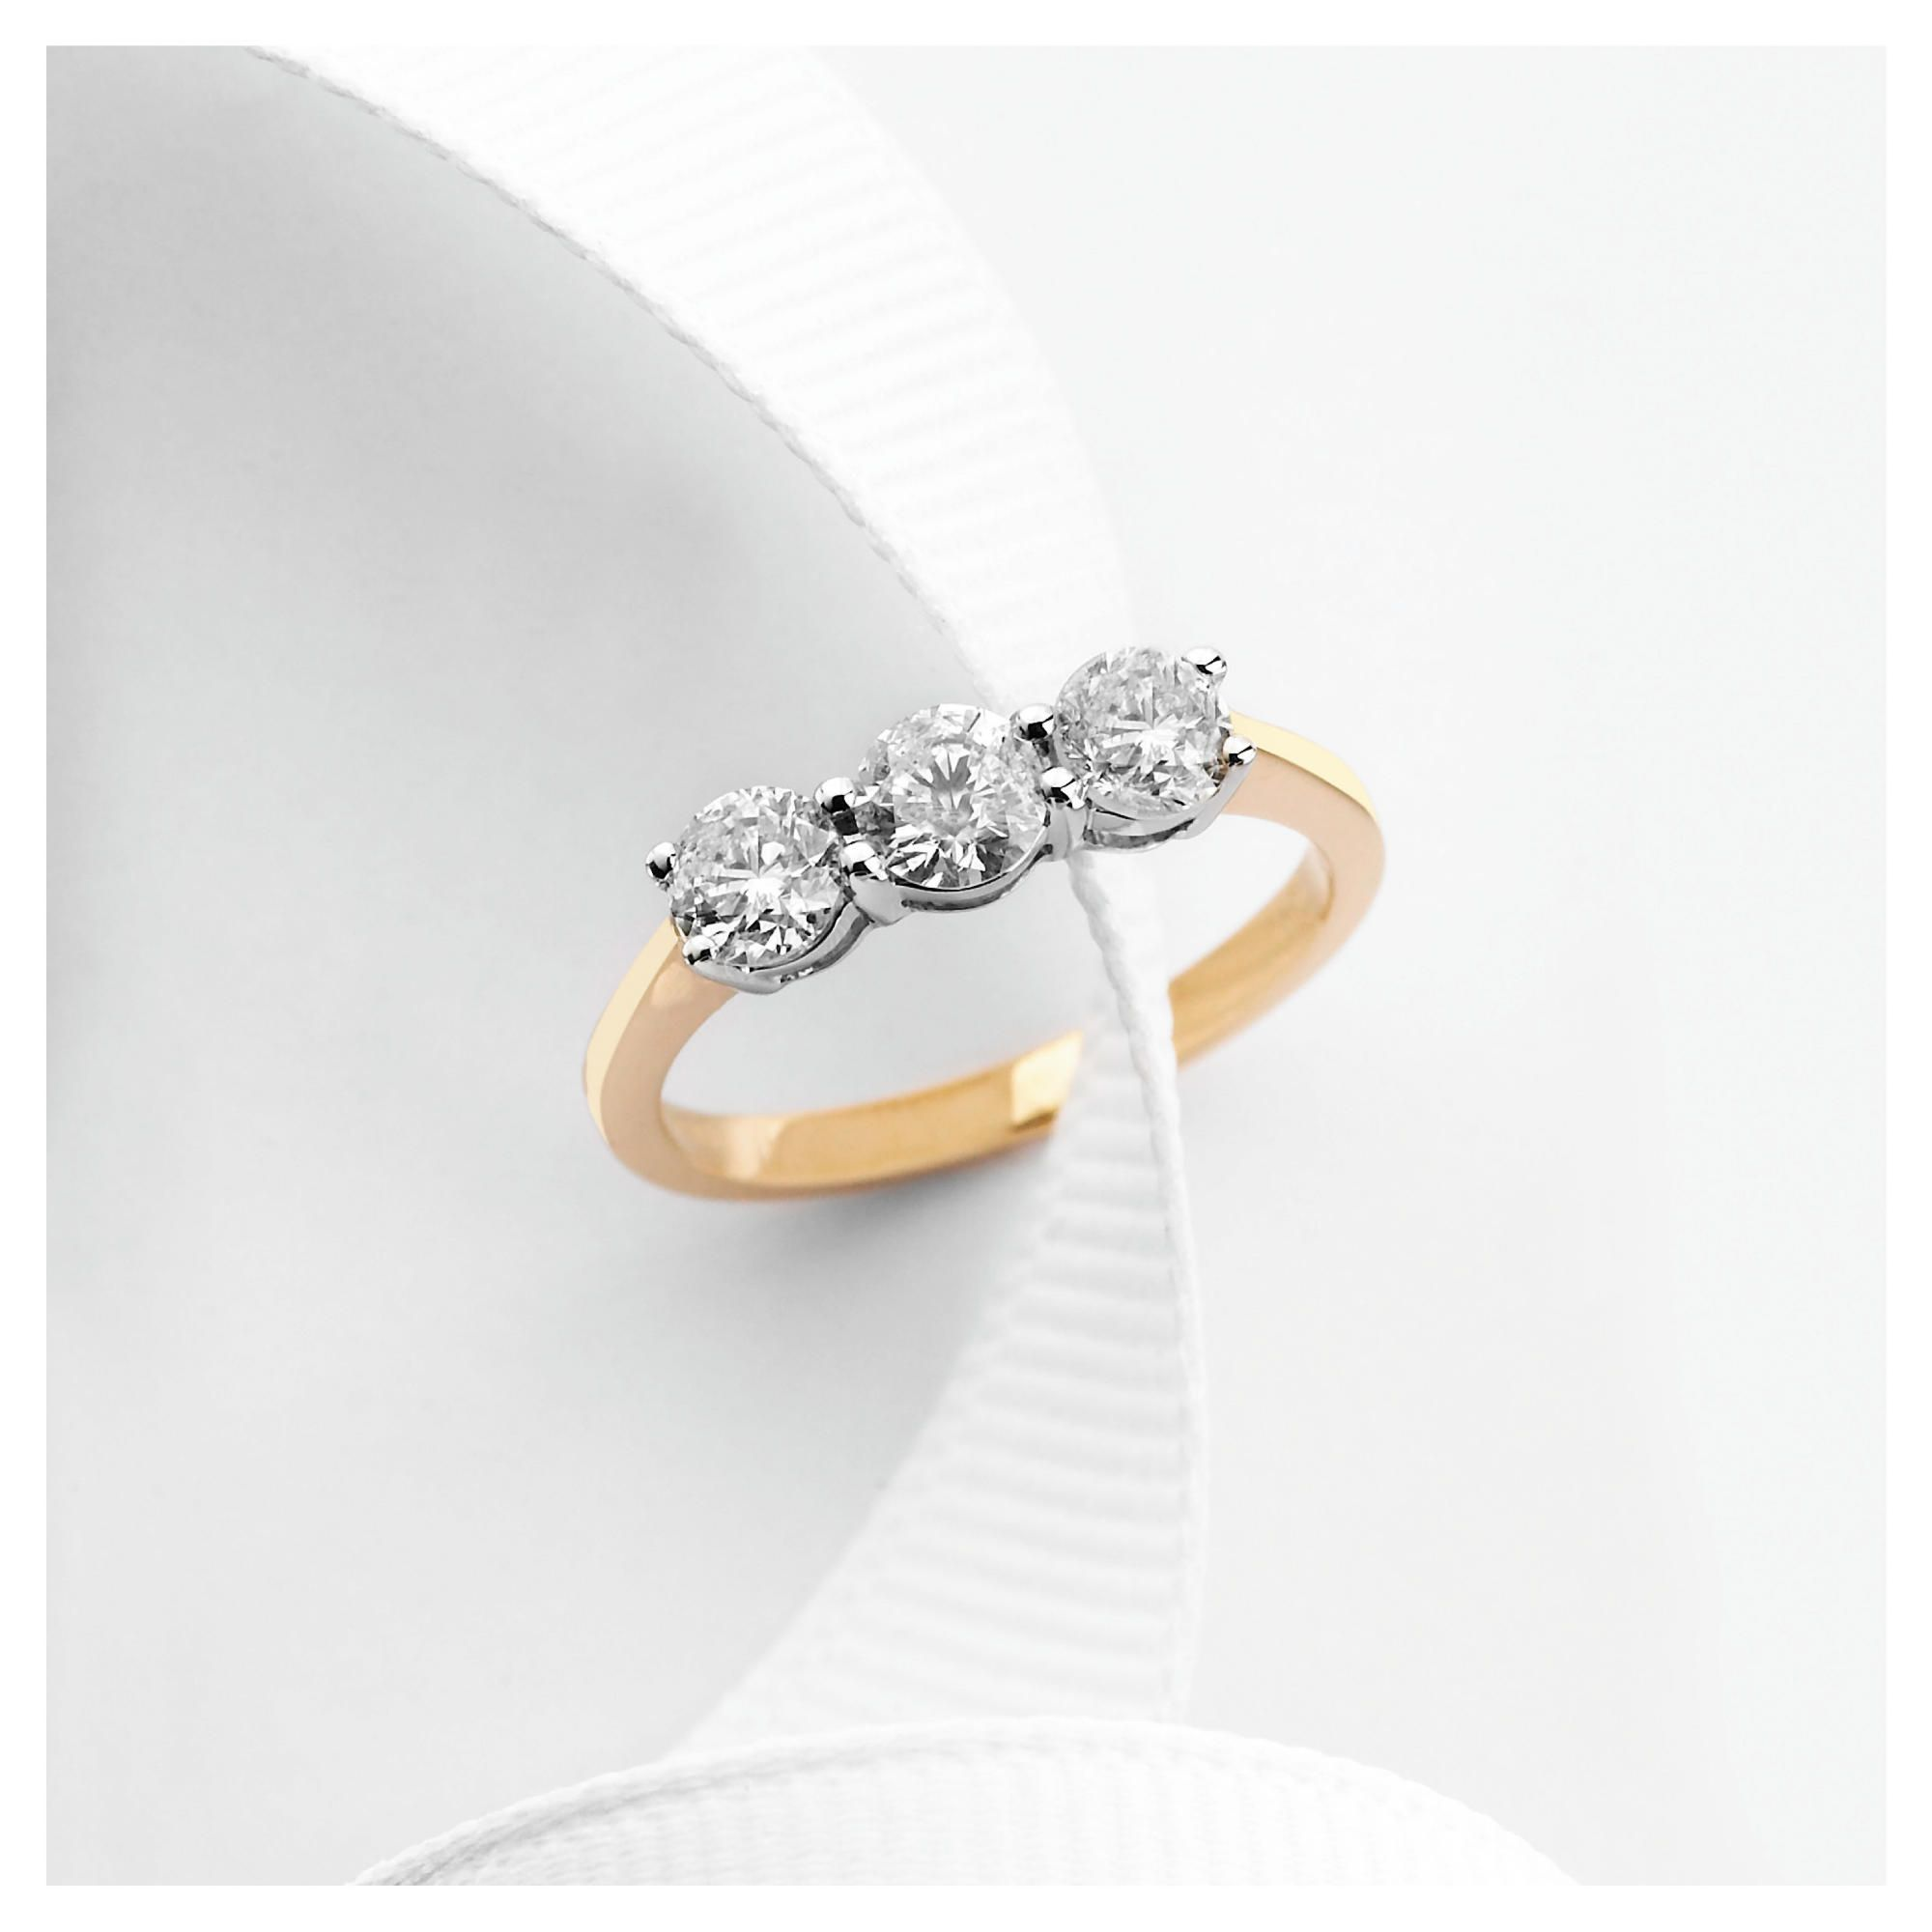 9ct Gold 1ct 3 Stone Diamond Ring, J at Tesco Direct